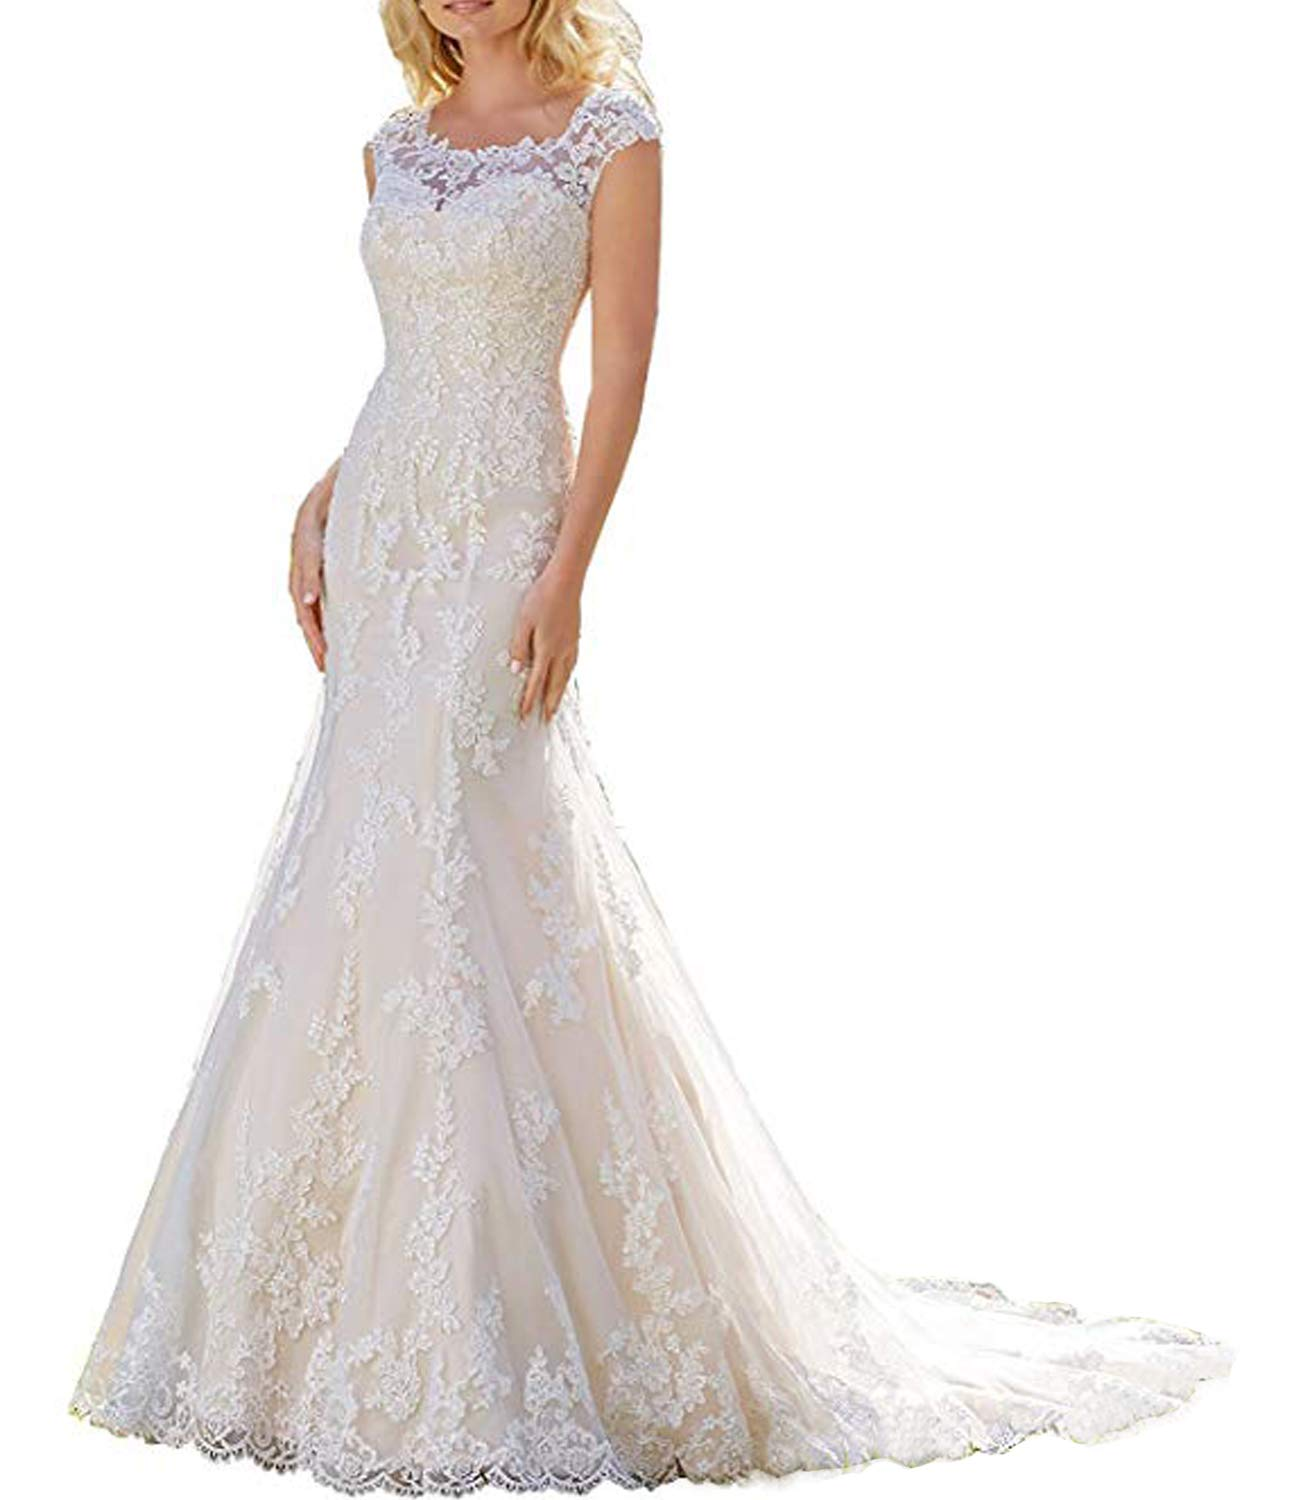 Alanre Scoop Mermaid Wedding Dresses Cap Sleeve Transparent Lace Bride Gown  Ivory 14